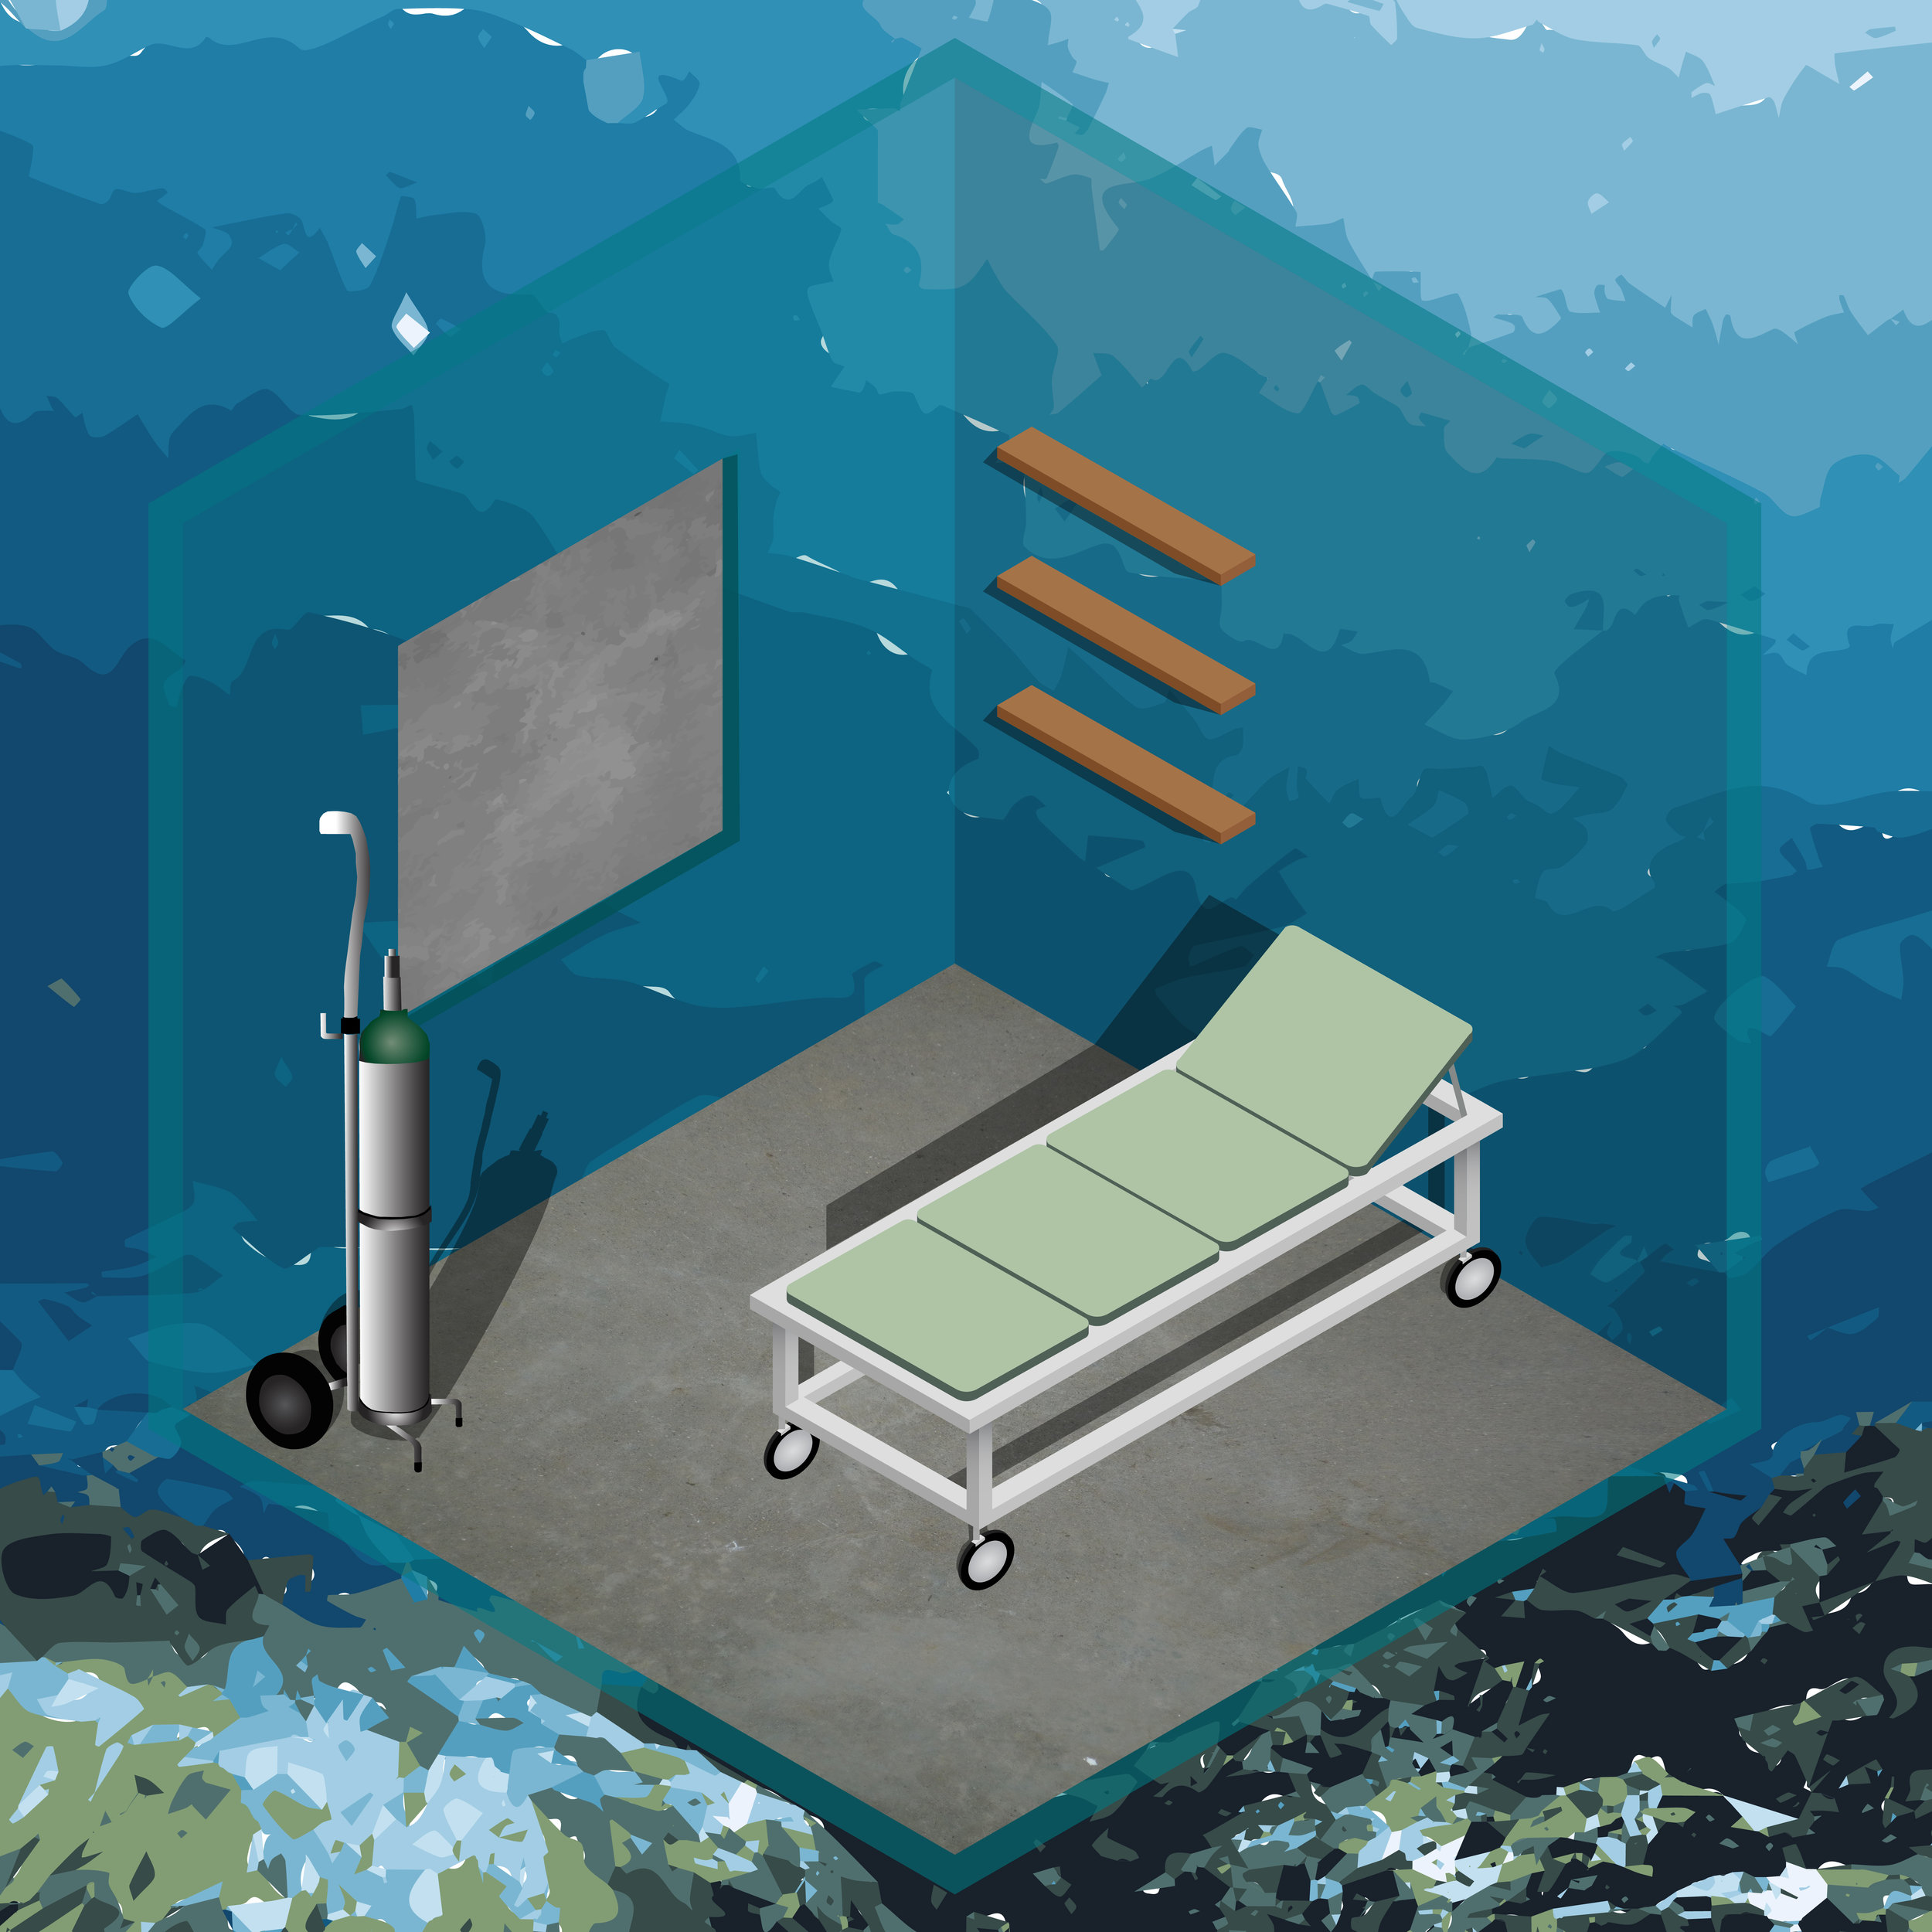 Room for Rent: Semi uninterrupted ocean views. Oxygen tank included for free. Ps. By signing the contract tenant agrees that:    - The landlord is not responsible for any water leaks and / or shark attacks.    - Resident approves to partake in any underwater living research conducted on him/her